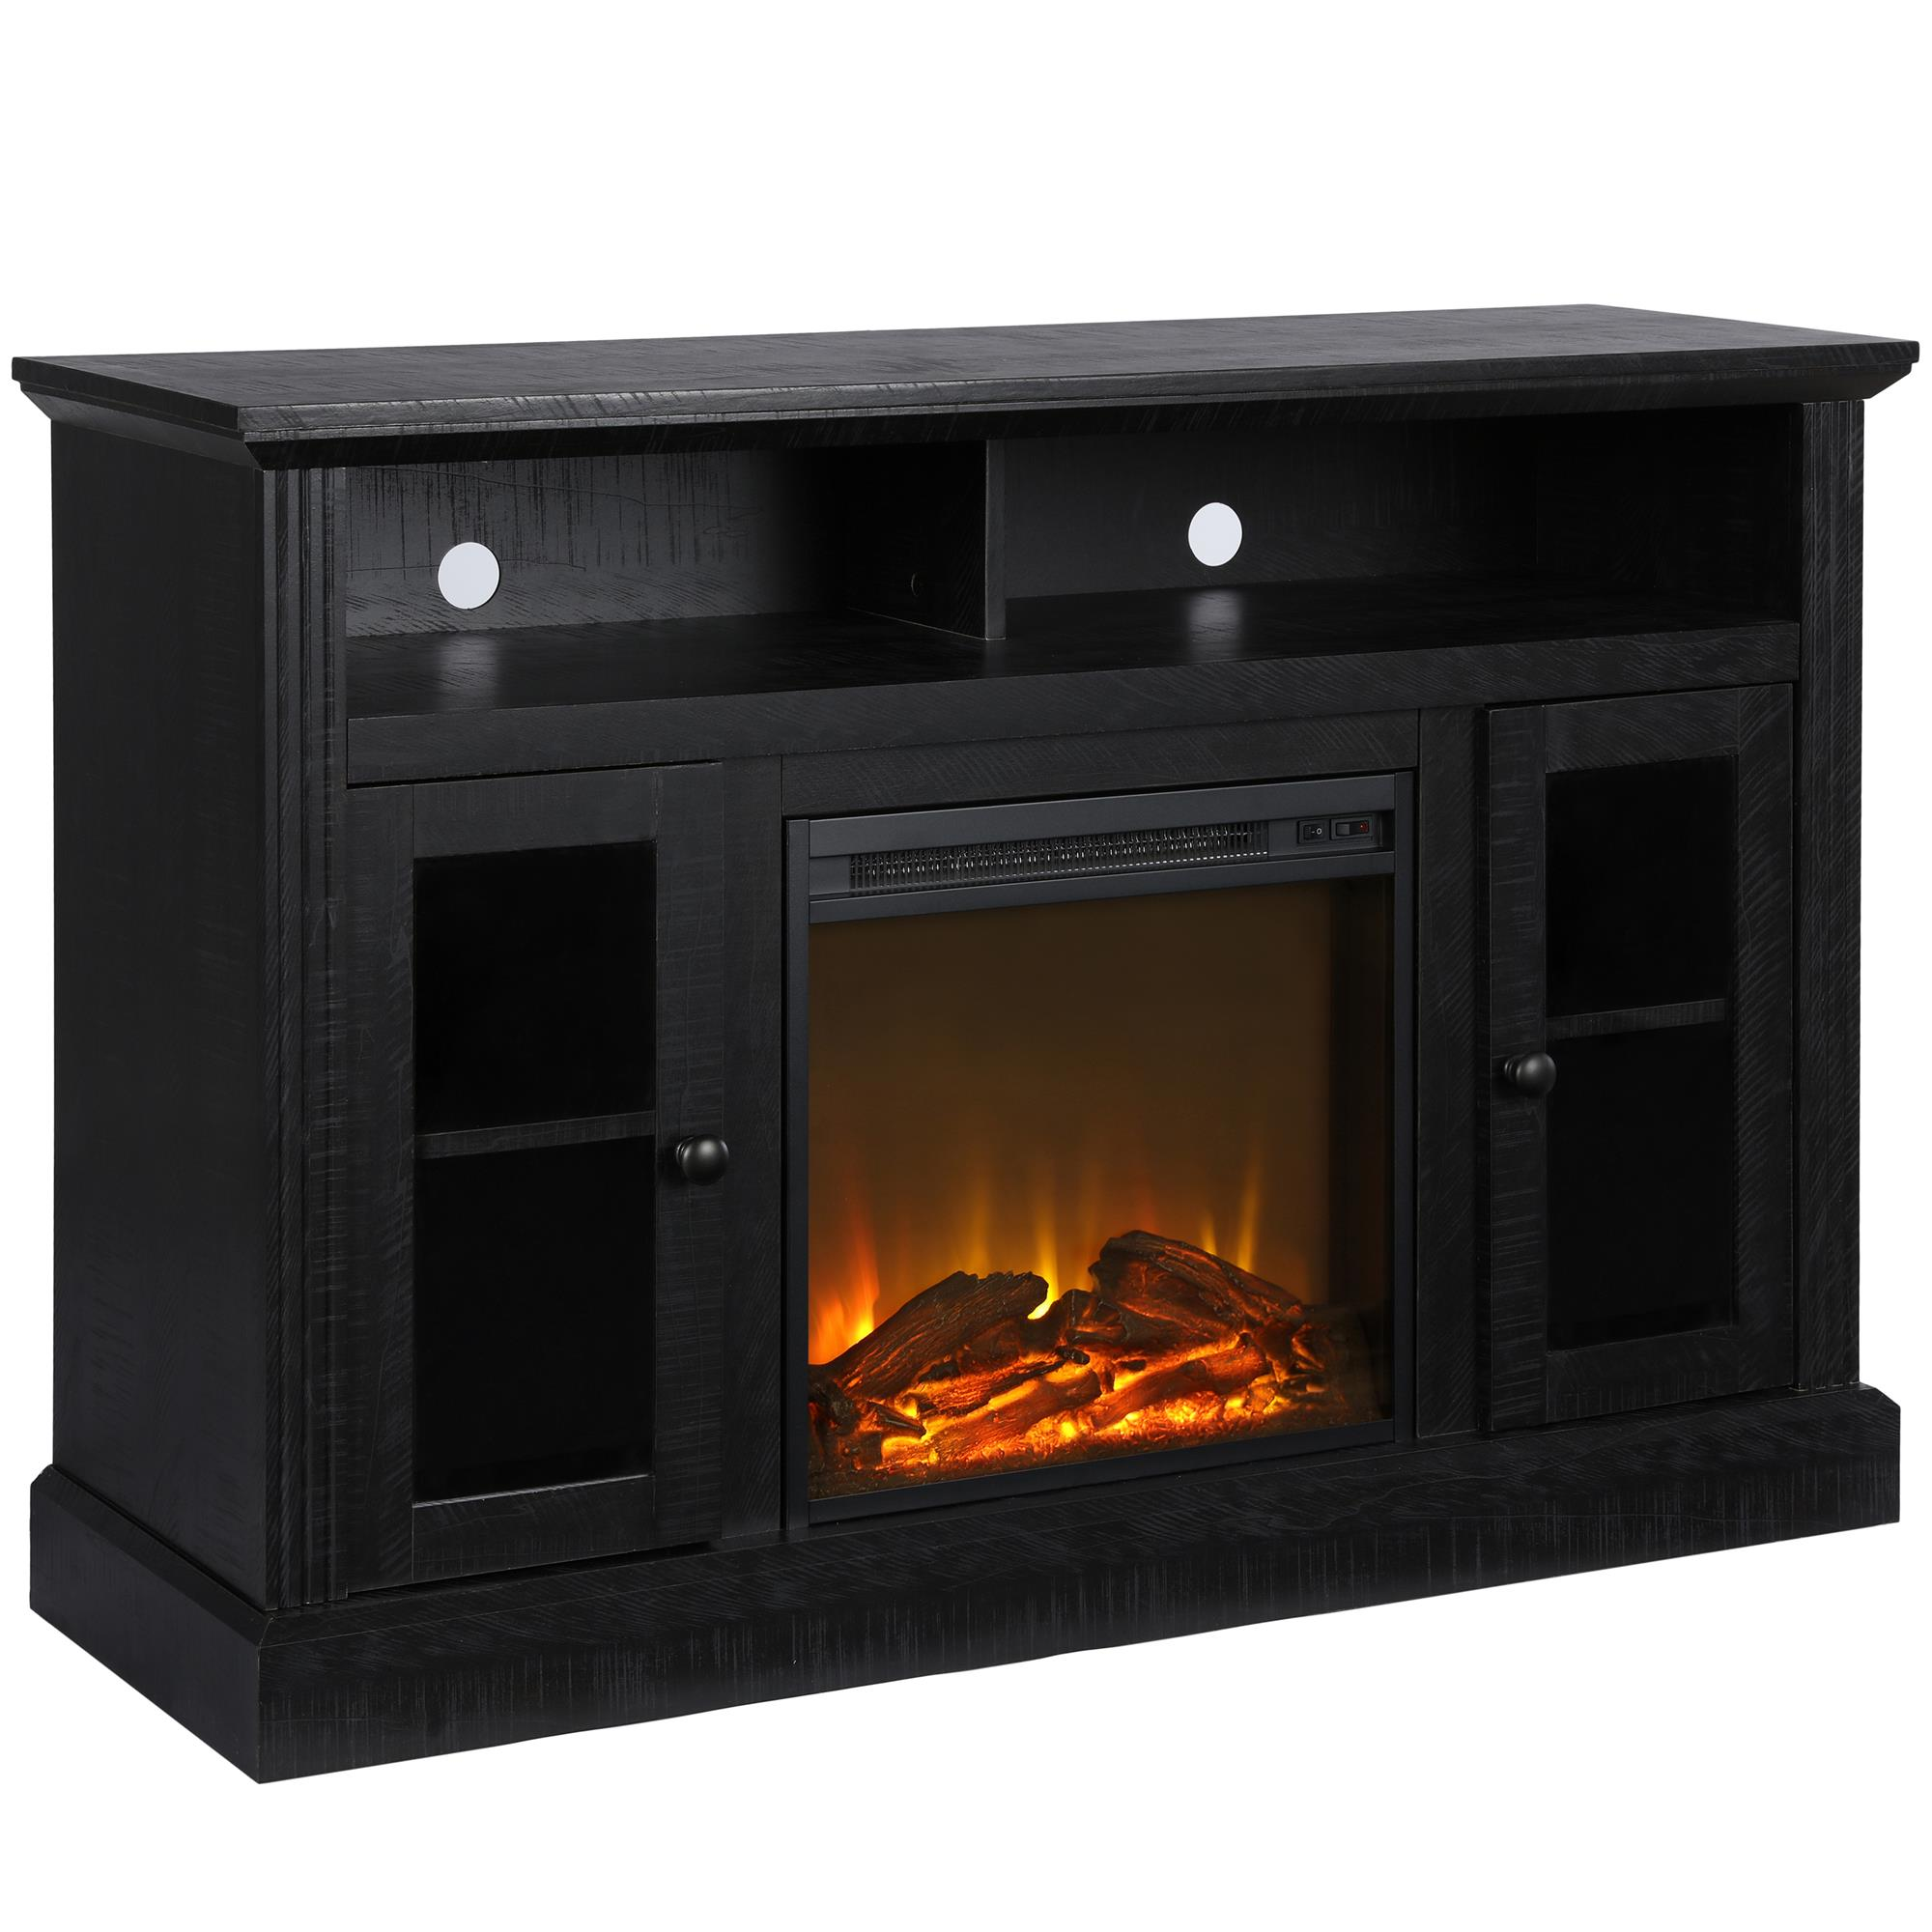 Walmart Black Electric Fireplace Ameriwood Home Chicago Electric Fireplace Tv Console For Tvs Up To A 50